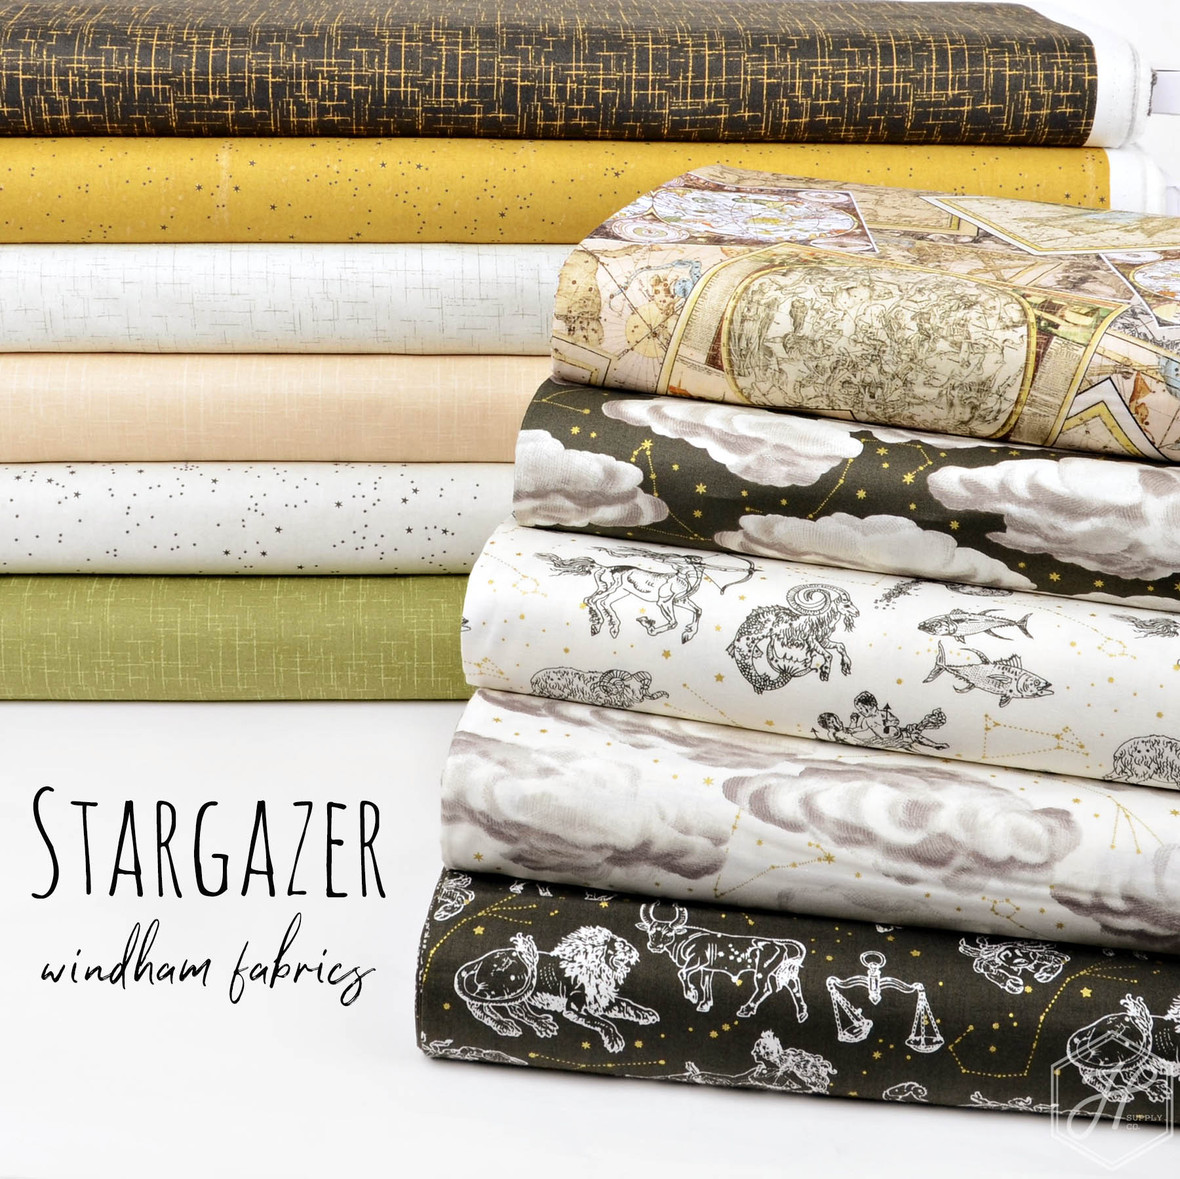 StarGazer Fabric Poster Windham at Hawthorne Supply Co